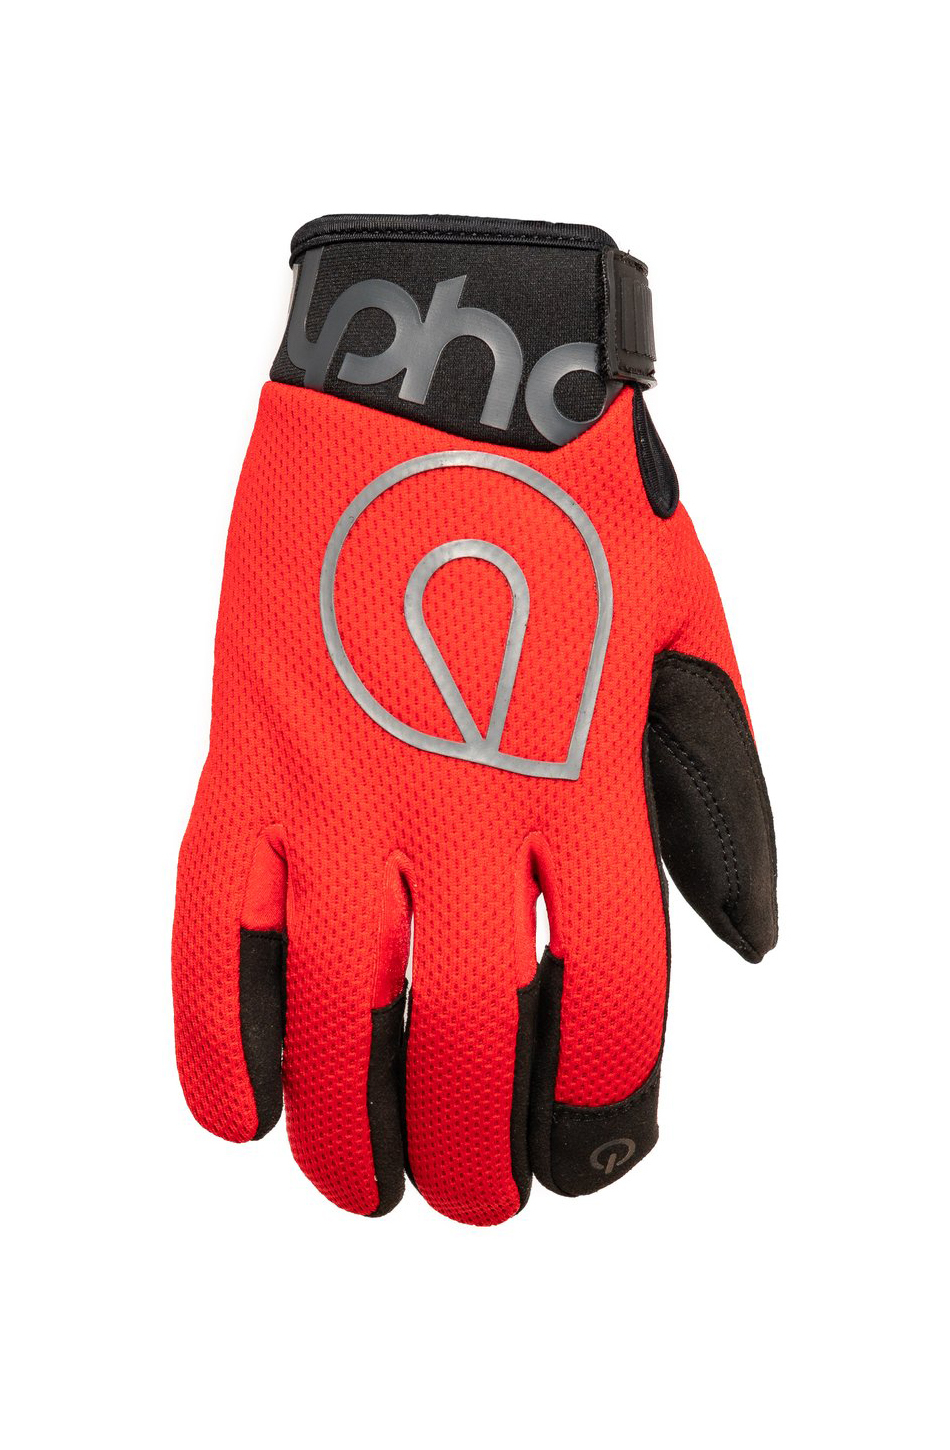 Alpha Gloves AG02-02-L Gloves, Shop, The Standard, Hook and Loop Closure, Neoprene Cuff, Mesh Top, Touch Screen Capable, Synthetic Leather Palm, Red, Large, Pair